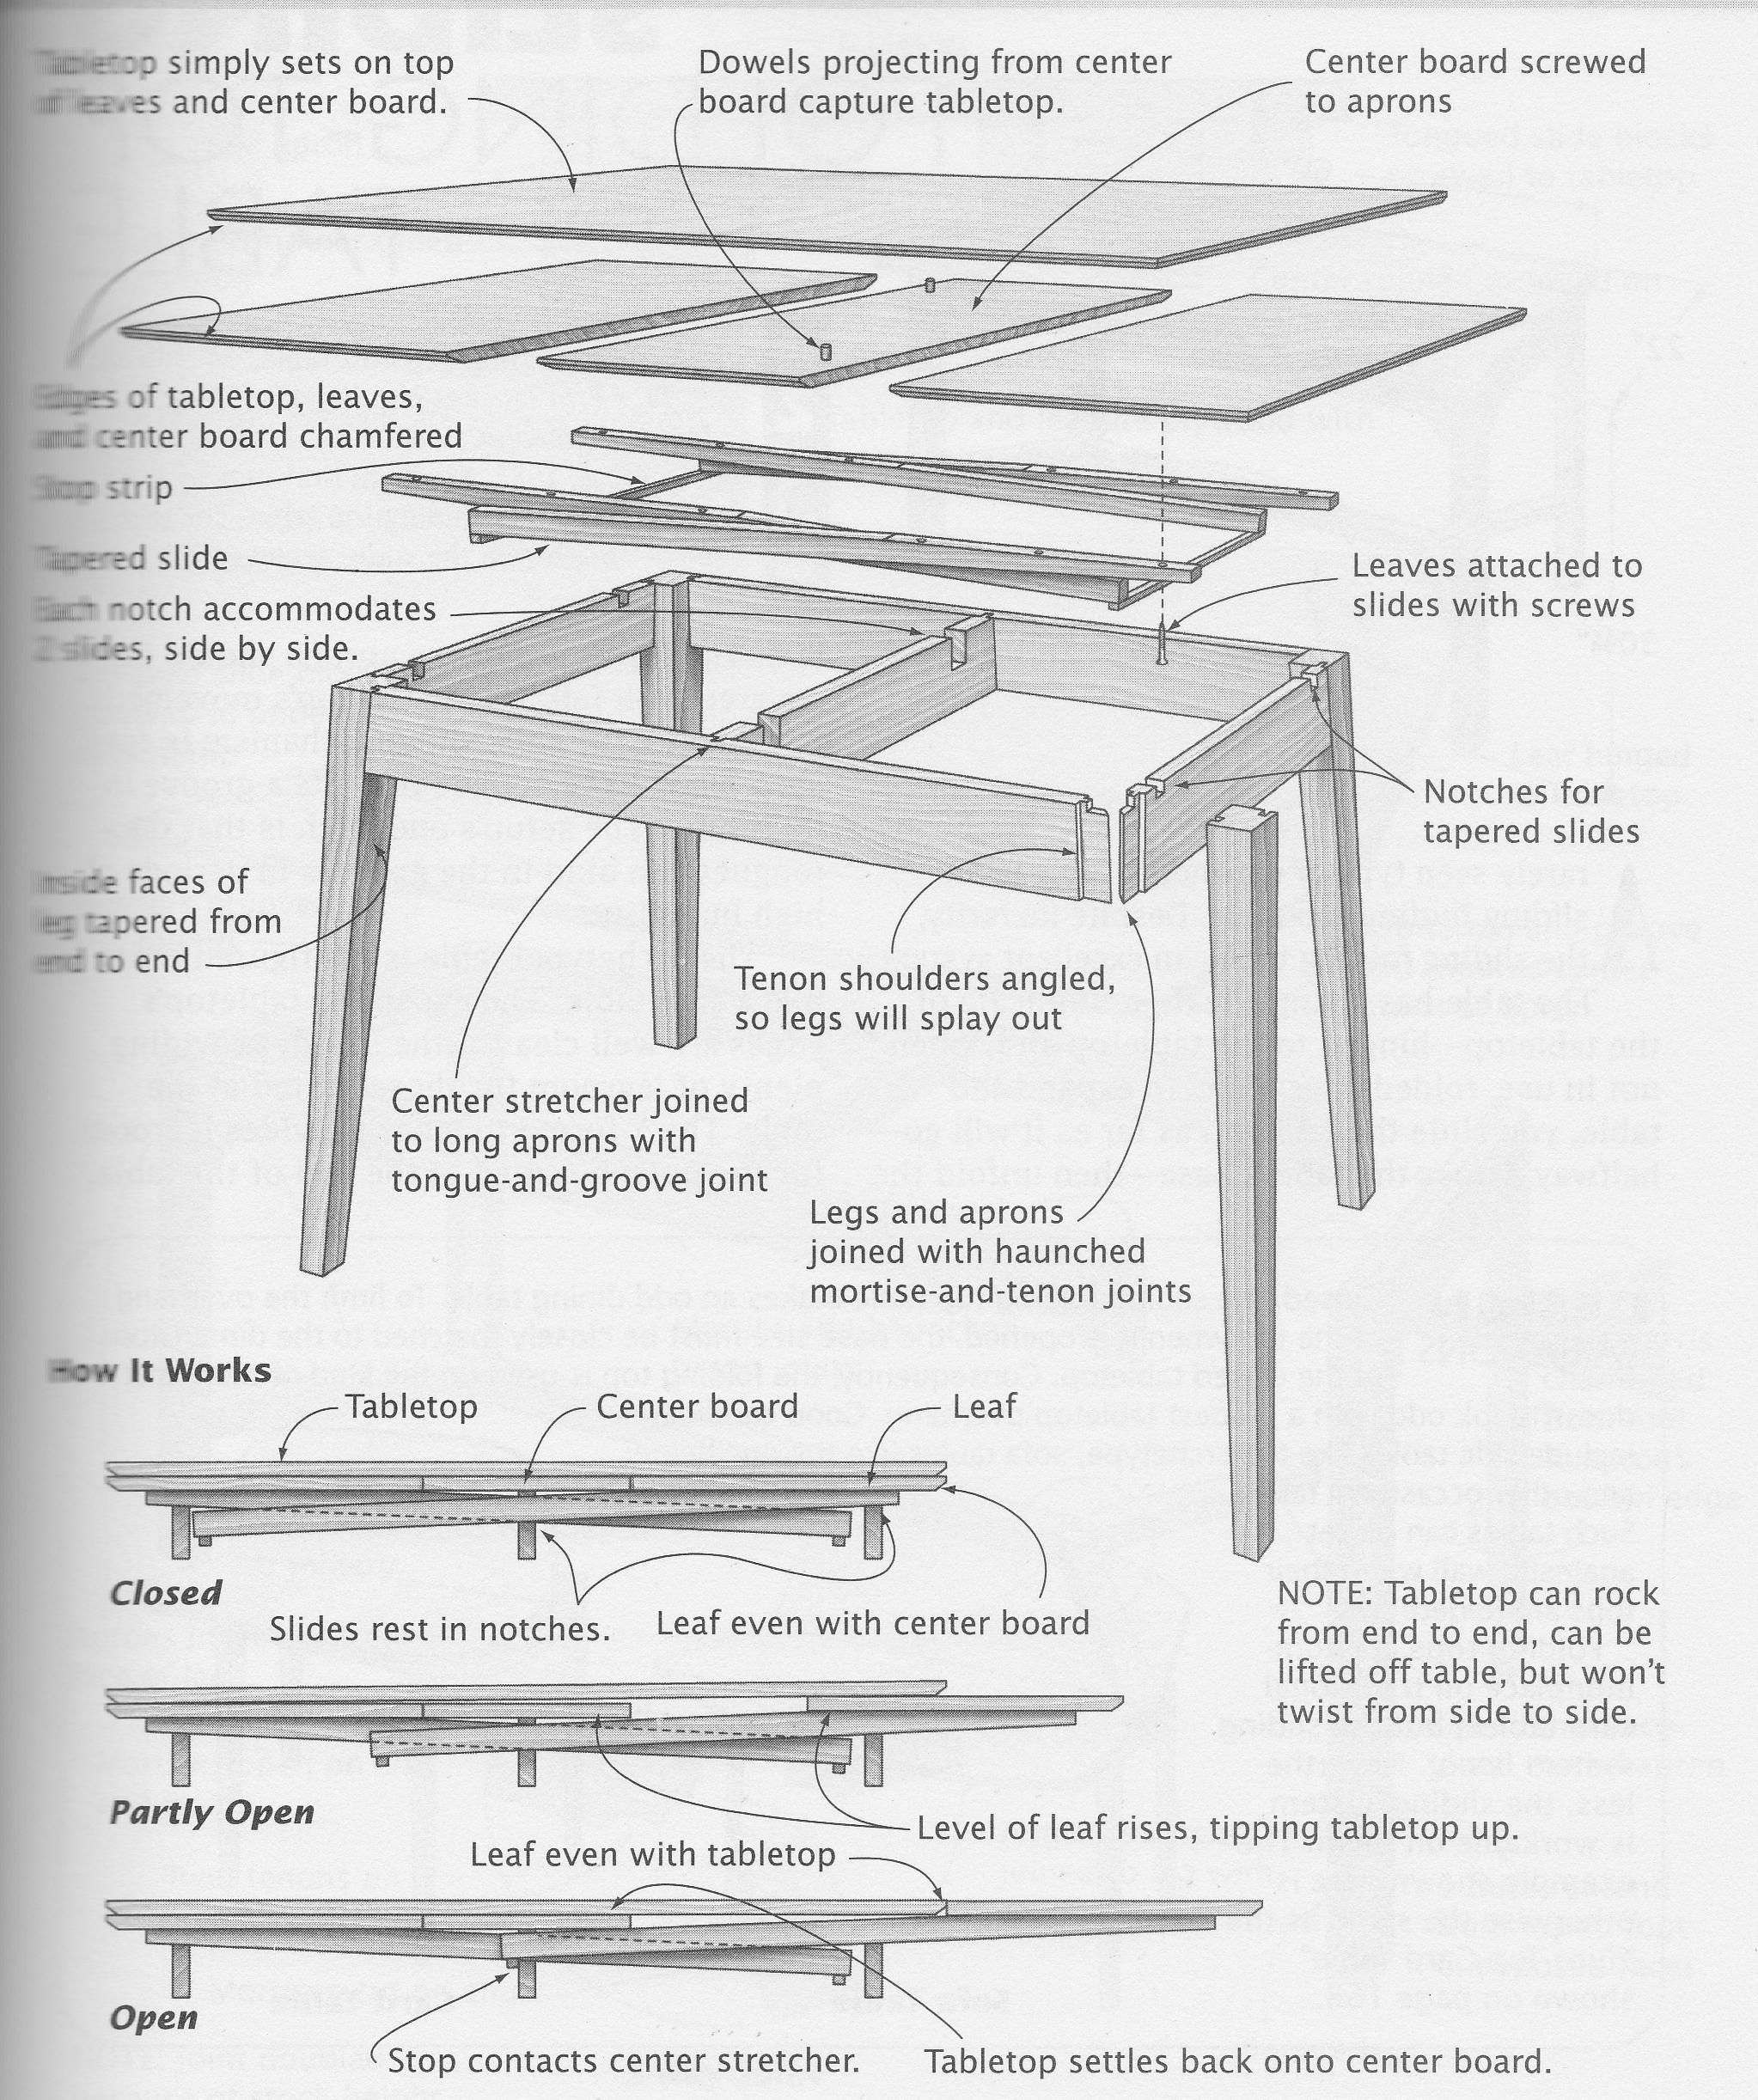 Draw Leaf Tables Dutch Pull Outs Too More About How They Work. Illustrated Cabimaking Bill Hylton Great Draw Leaf Table Article. Wiring. Leaf Project Drone Wiring Diagram At Scoala.co